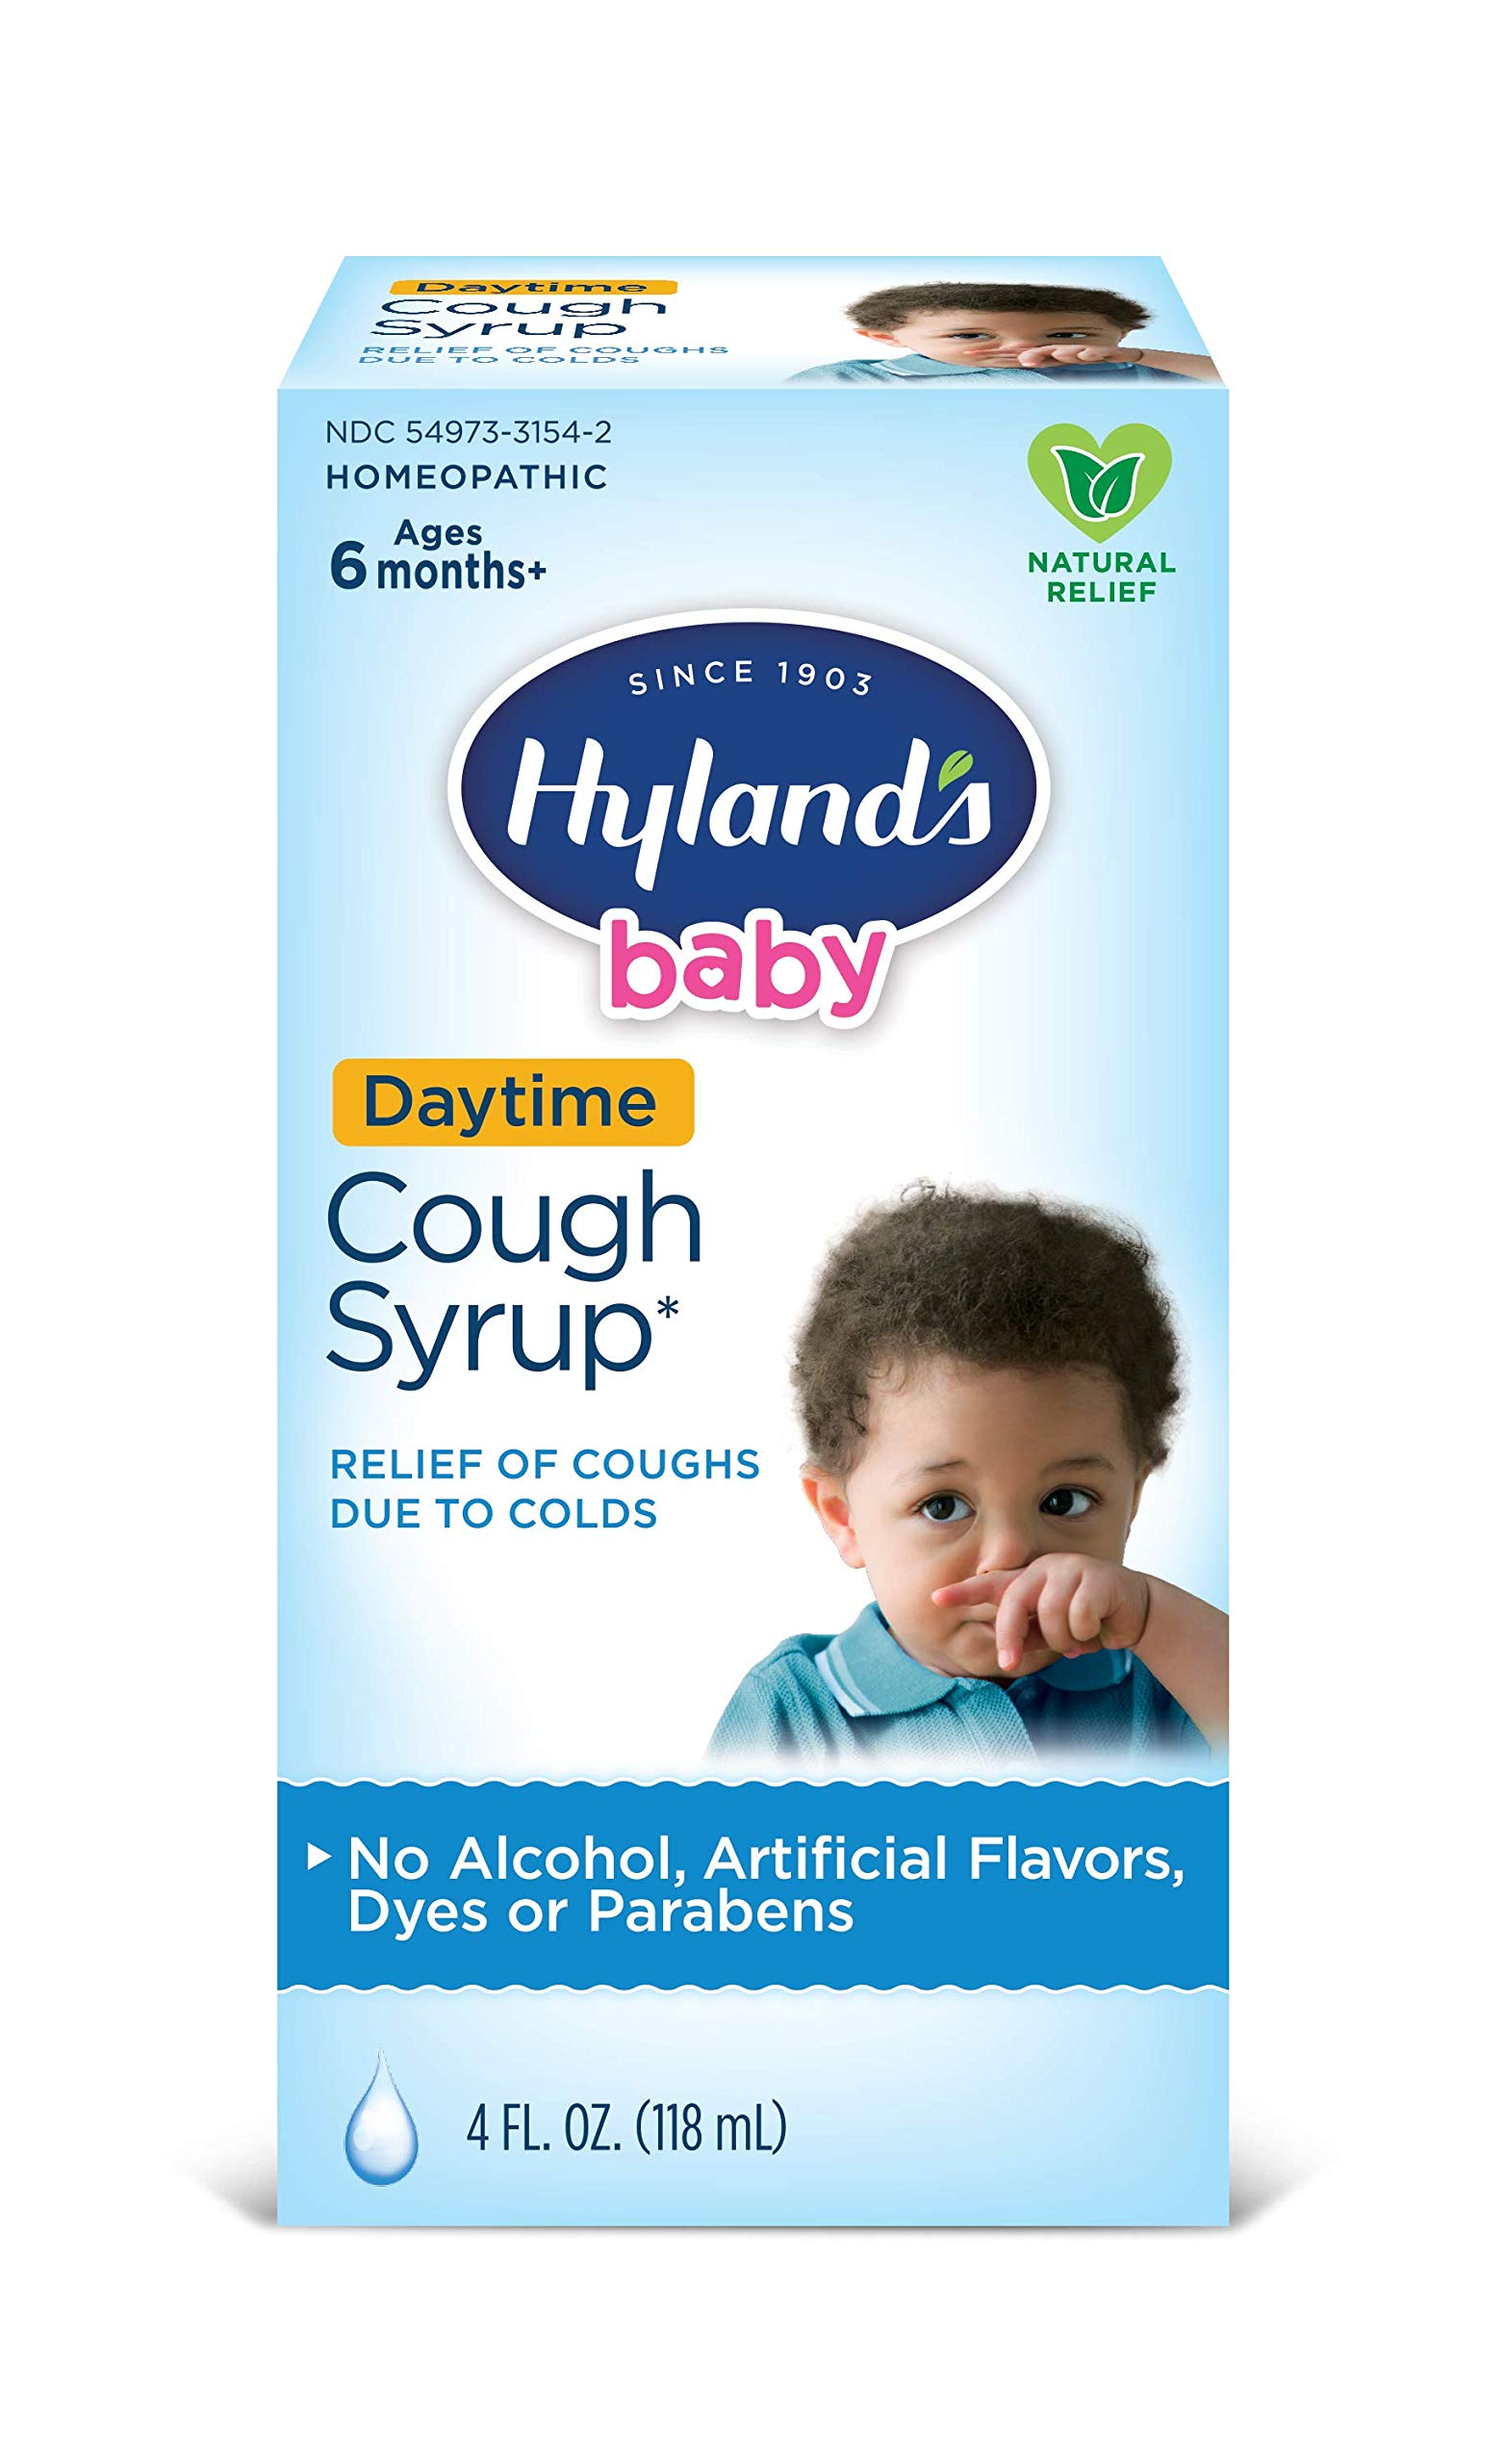 Infant and Baby Cold Medicine, Cough Syrup, Hyland's Baby, Natural Relief of Coughs Due to Colds, 4 Fl Oz